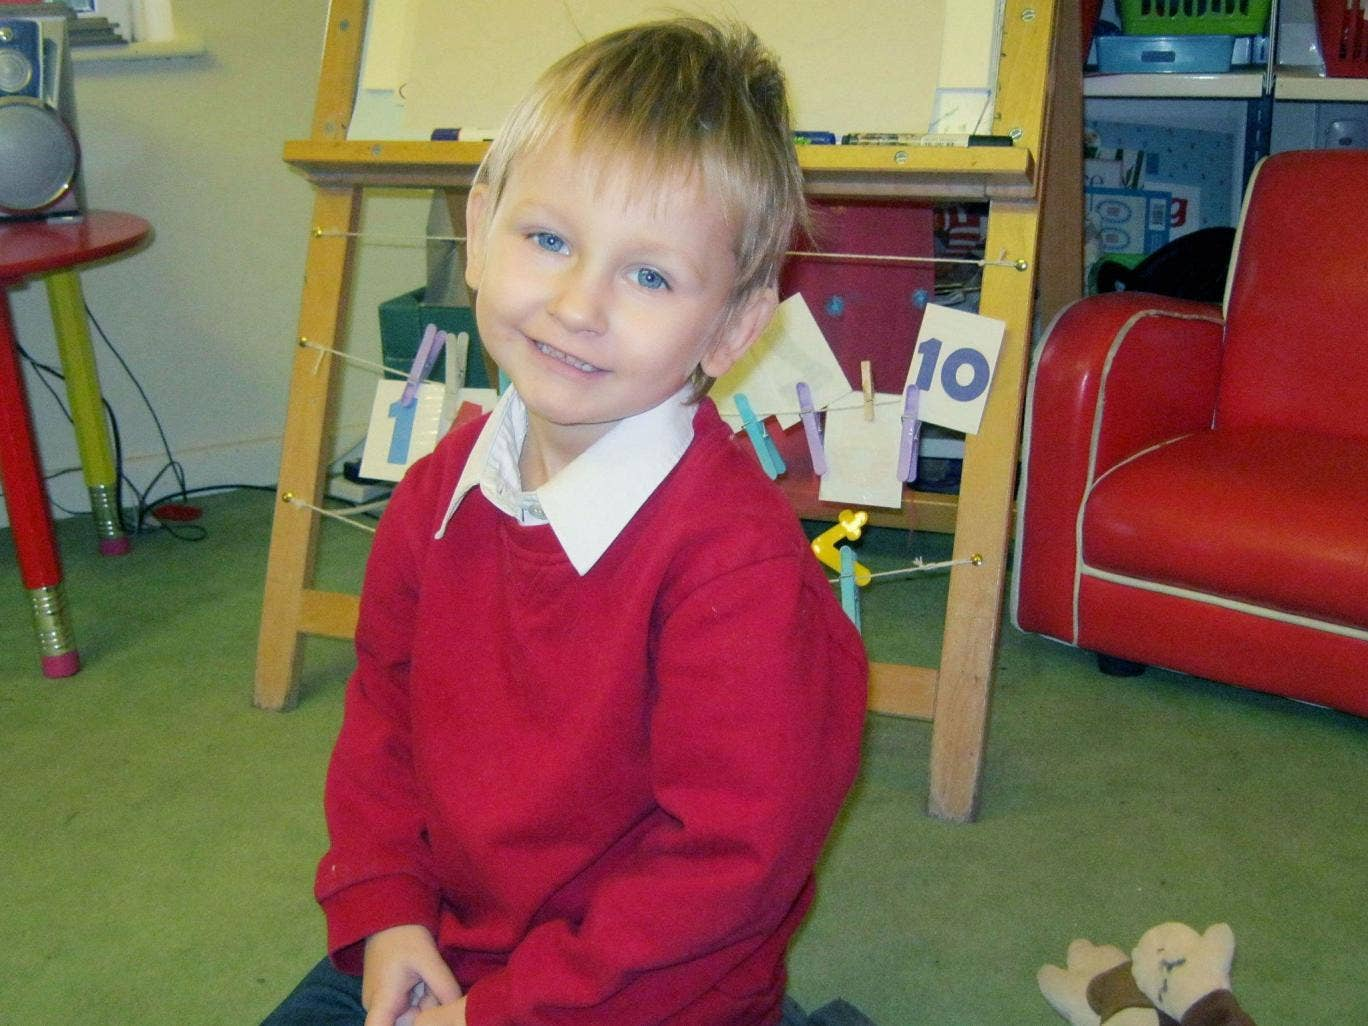 The charity says the death of Daniel Pelka exposed the lack of a joined-up approach